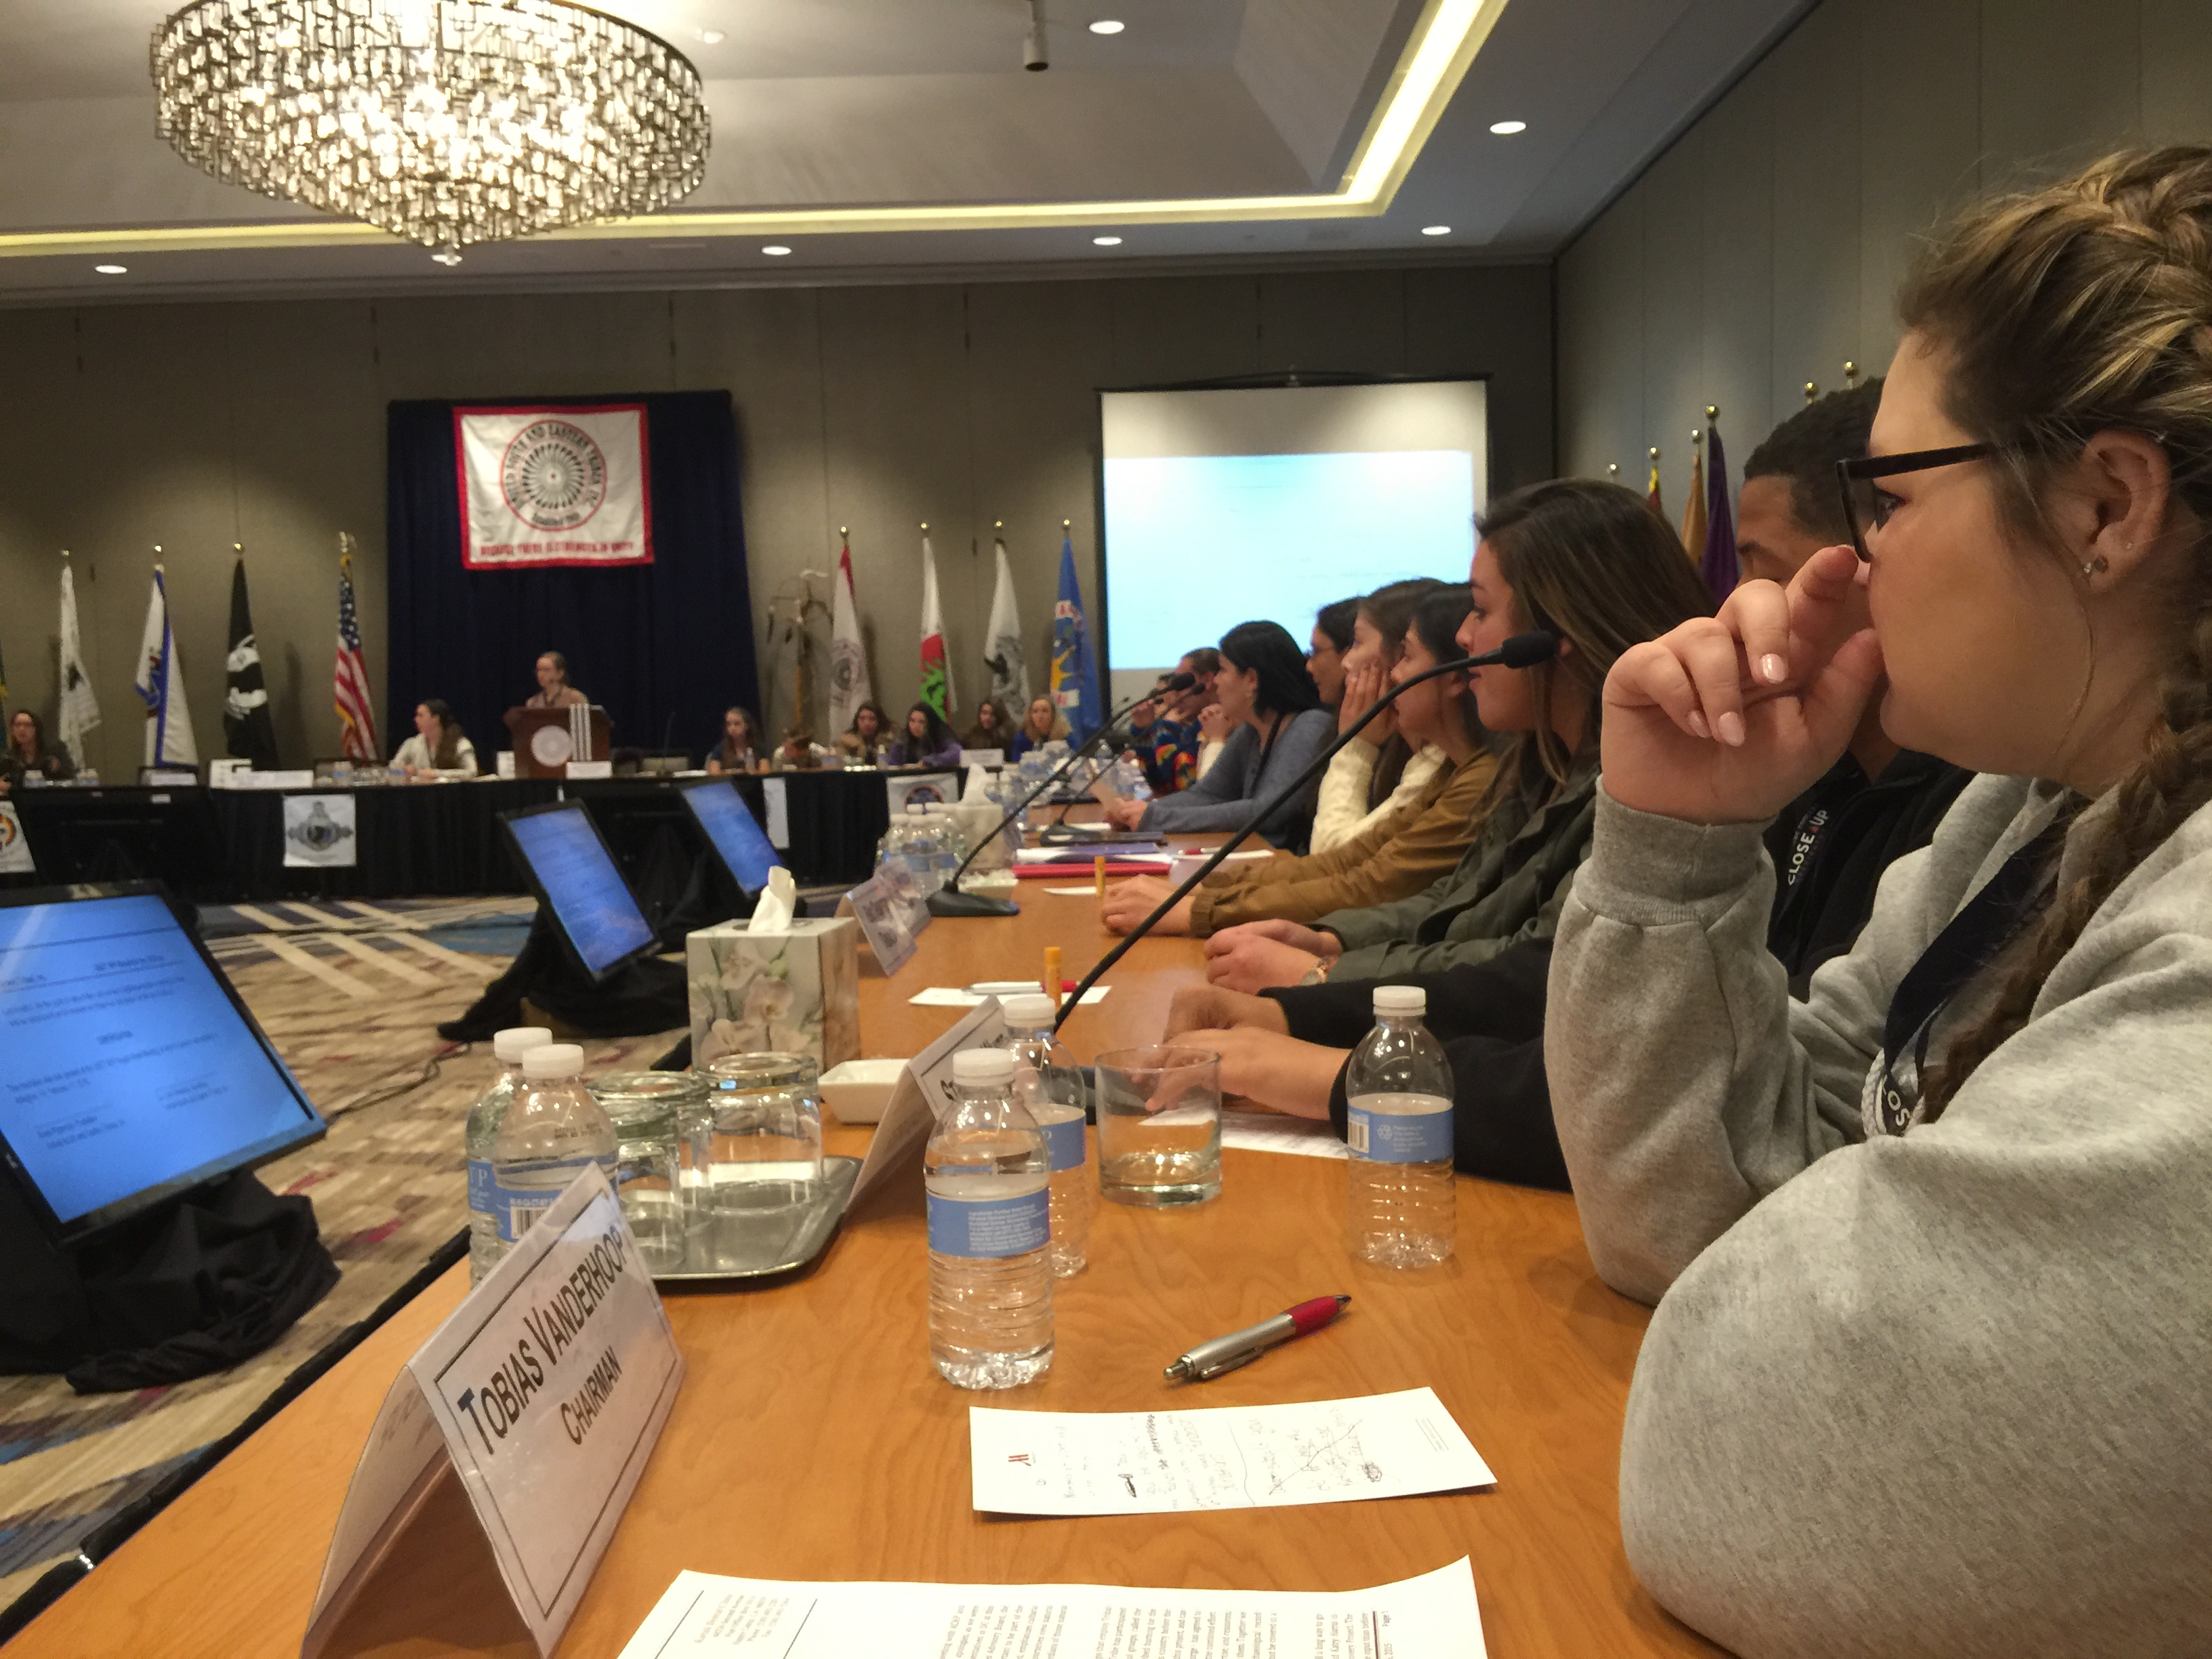 USET Close Up students participate in mock USET Board of Directors meeting